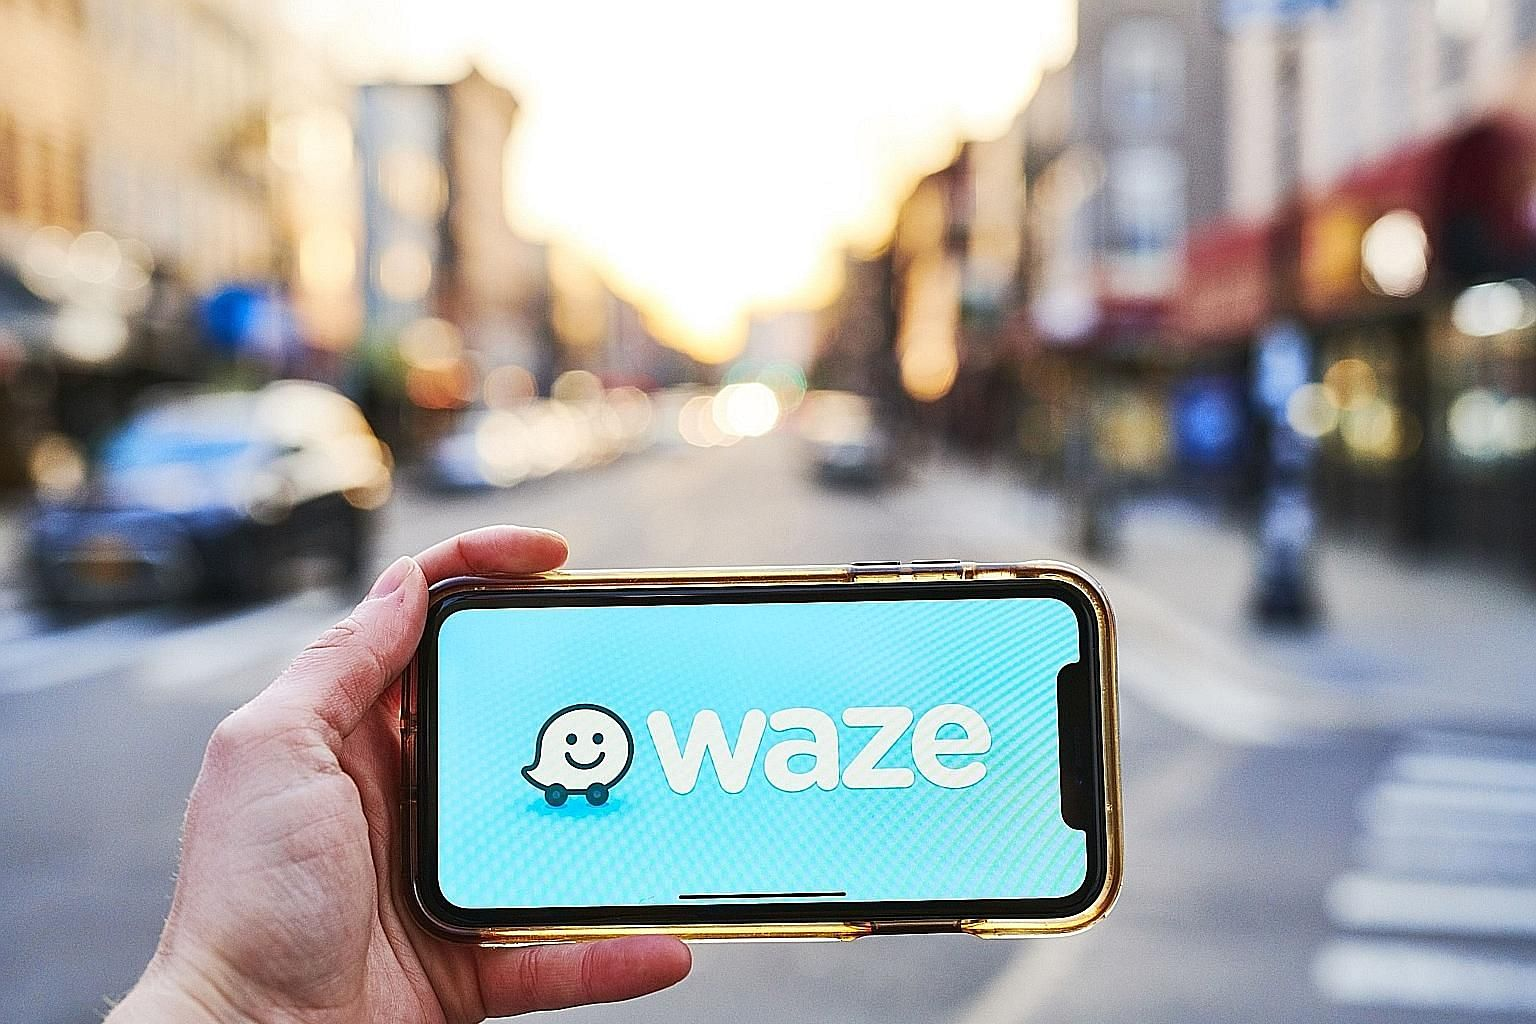 Waze, which uses user-supplied data to help motorists find other routes to avoid traffic jams or speed cameras, is laying off 30 people out of its 555-strong global workforce, but chief executive Noam Bardin did not say how many employees in Singapor